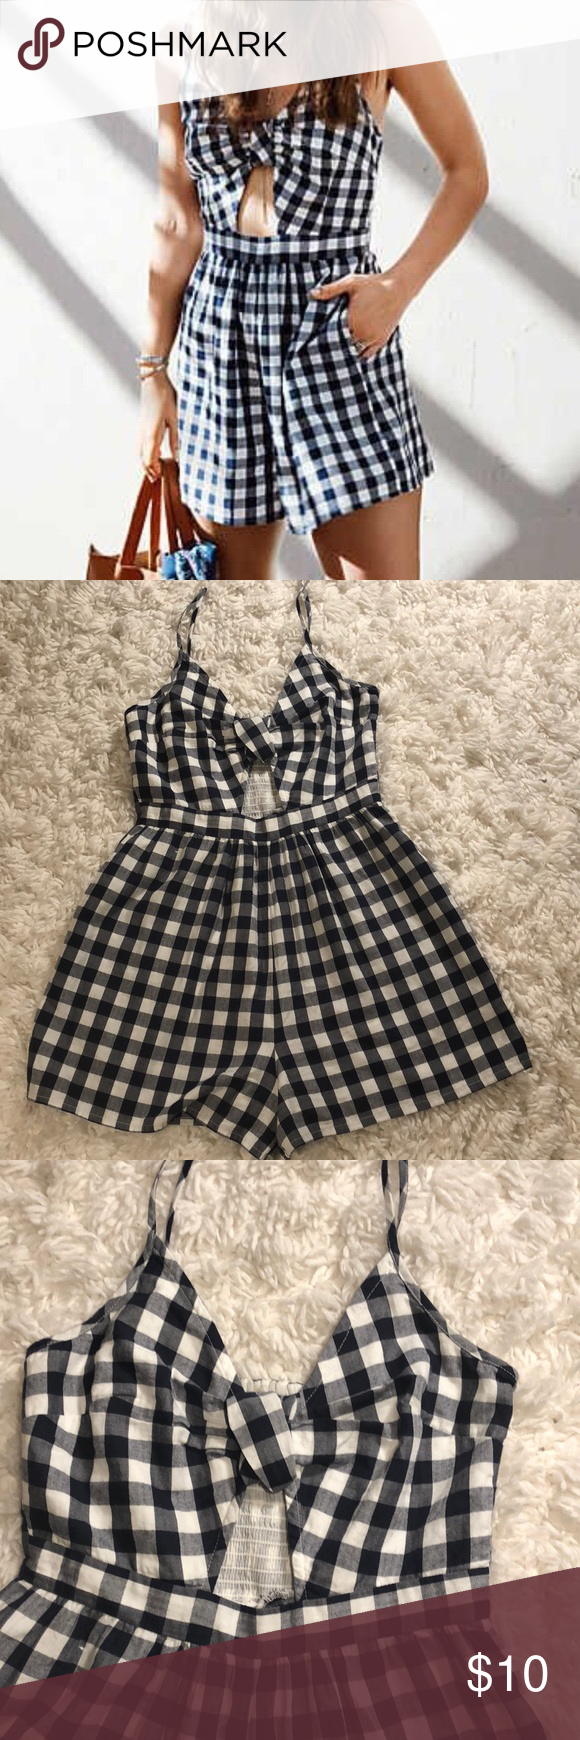 13e70e9b95bb Gingham romper Gingham romper from American eagle worn once no longer fits  me. Super cute! American Eagle Outfitters Other